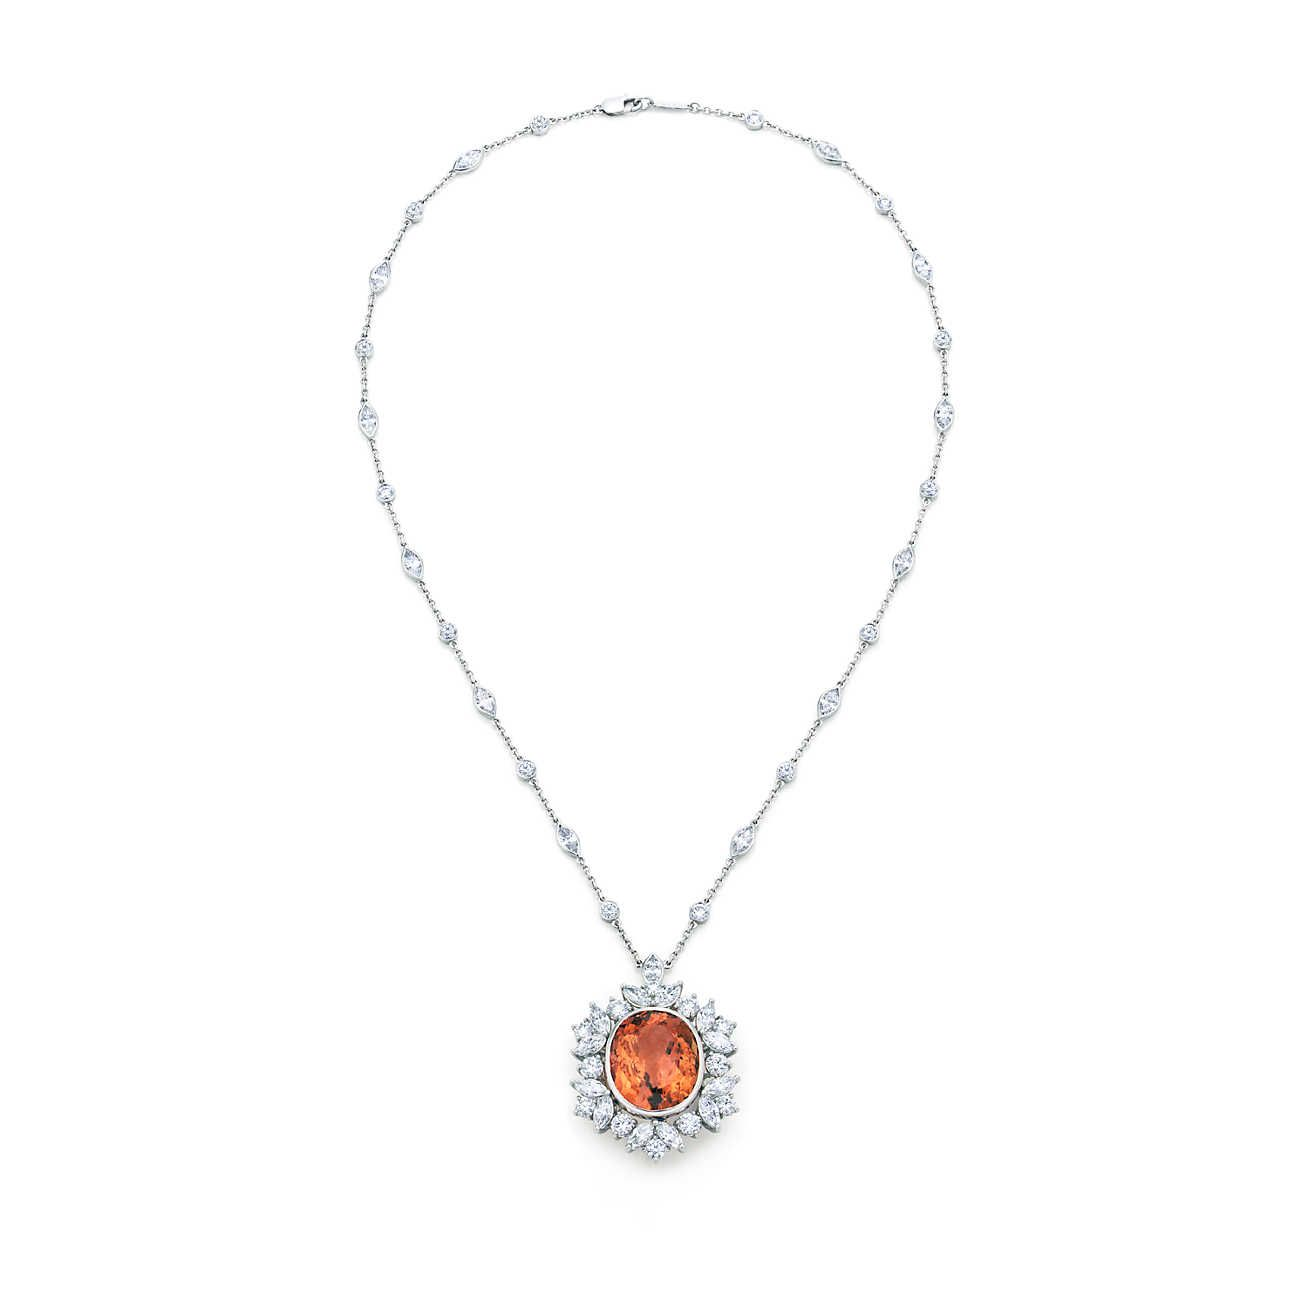 Imperial topaz necklace imperial topaz topaz and tiffany necklace imperial topaz necklace aloadofball Image collections